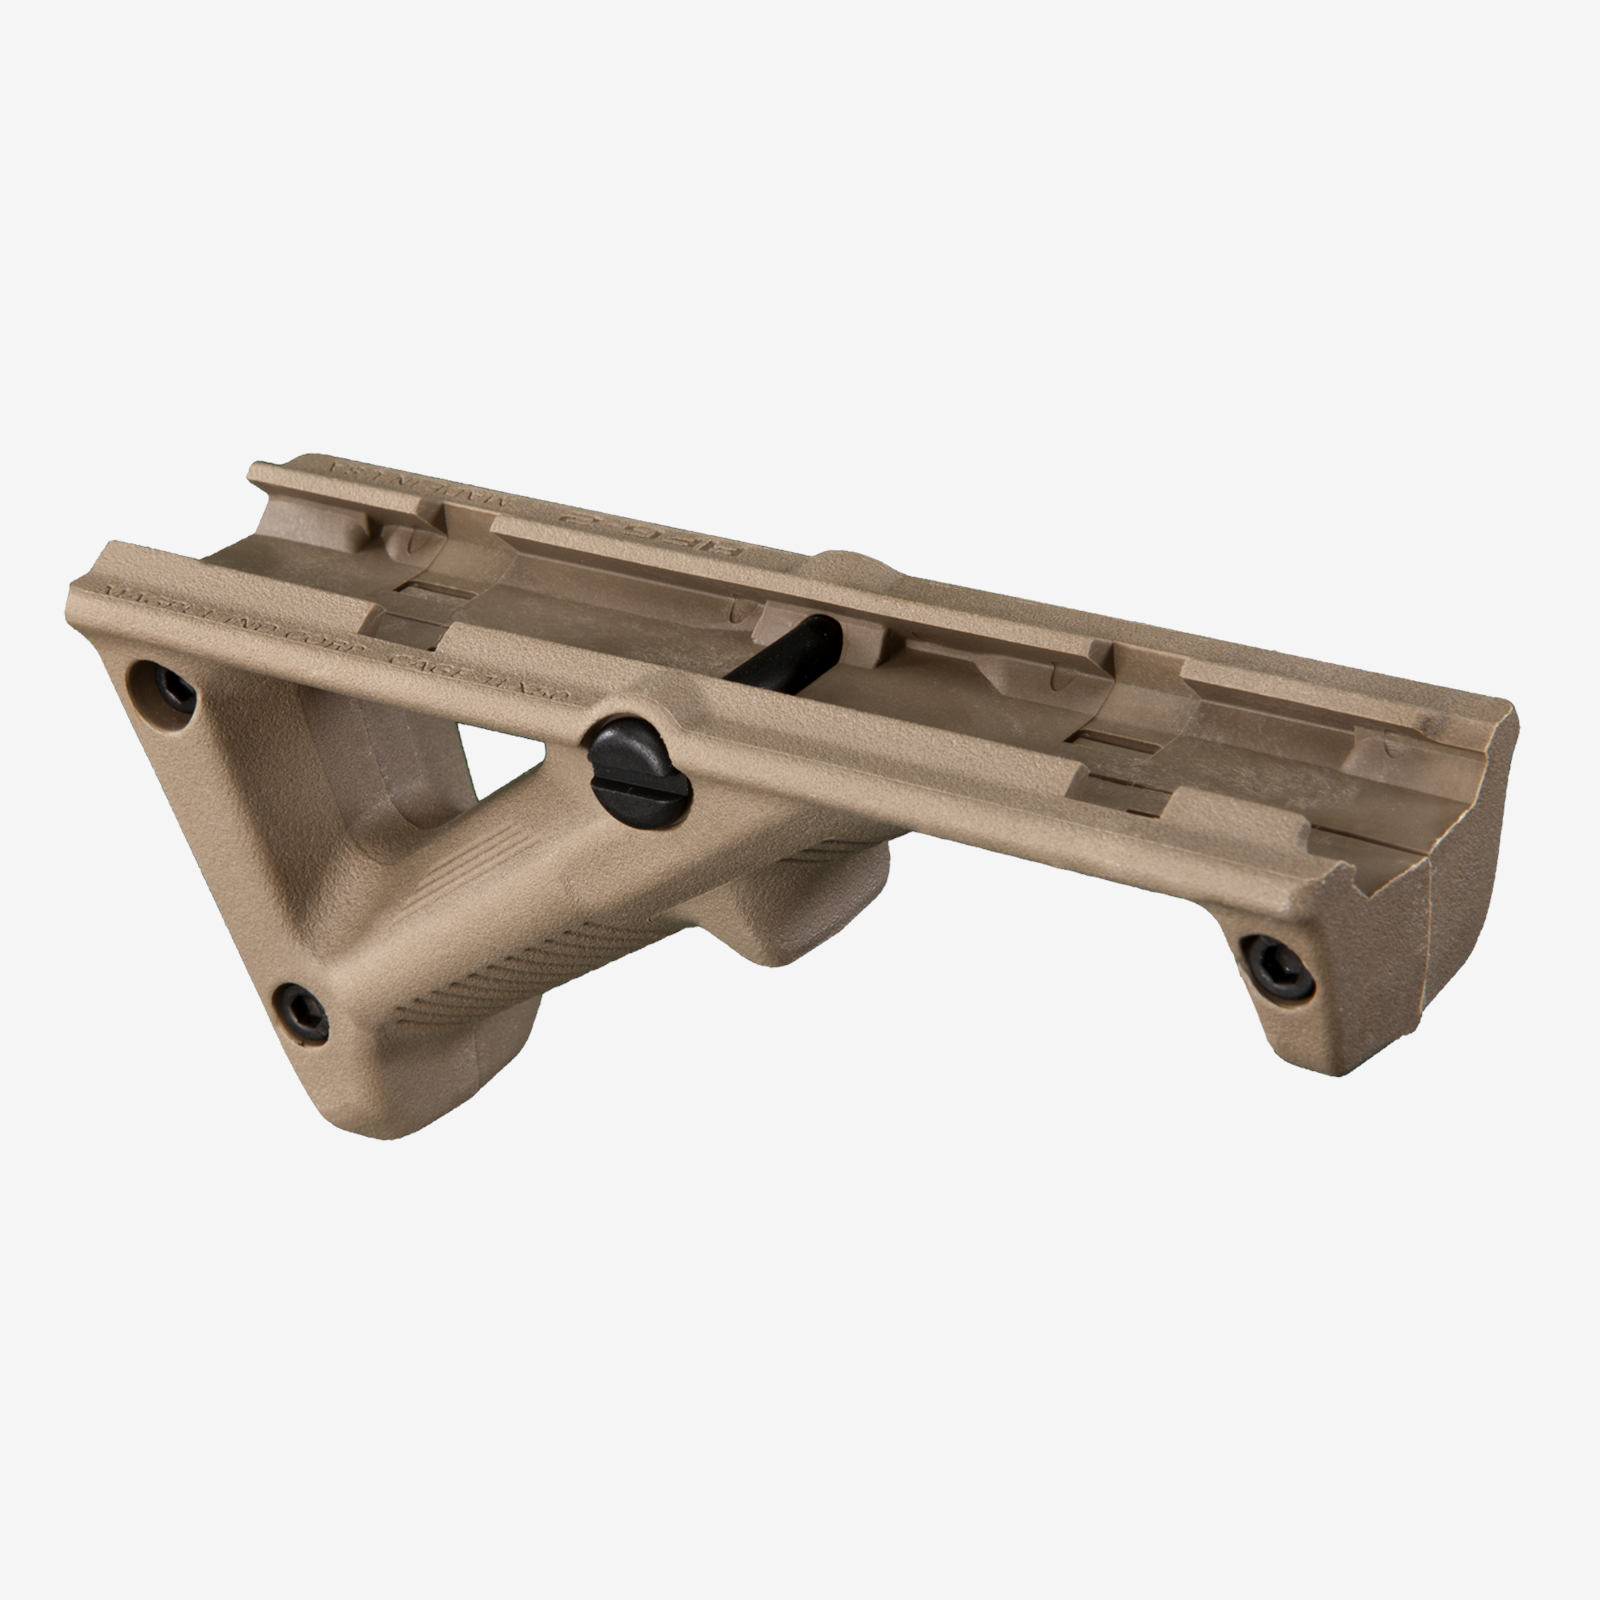 Magpul Angled Fore Grip AFG-2 for Picatinny Rails MAG414 - Australian Tactical Precision